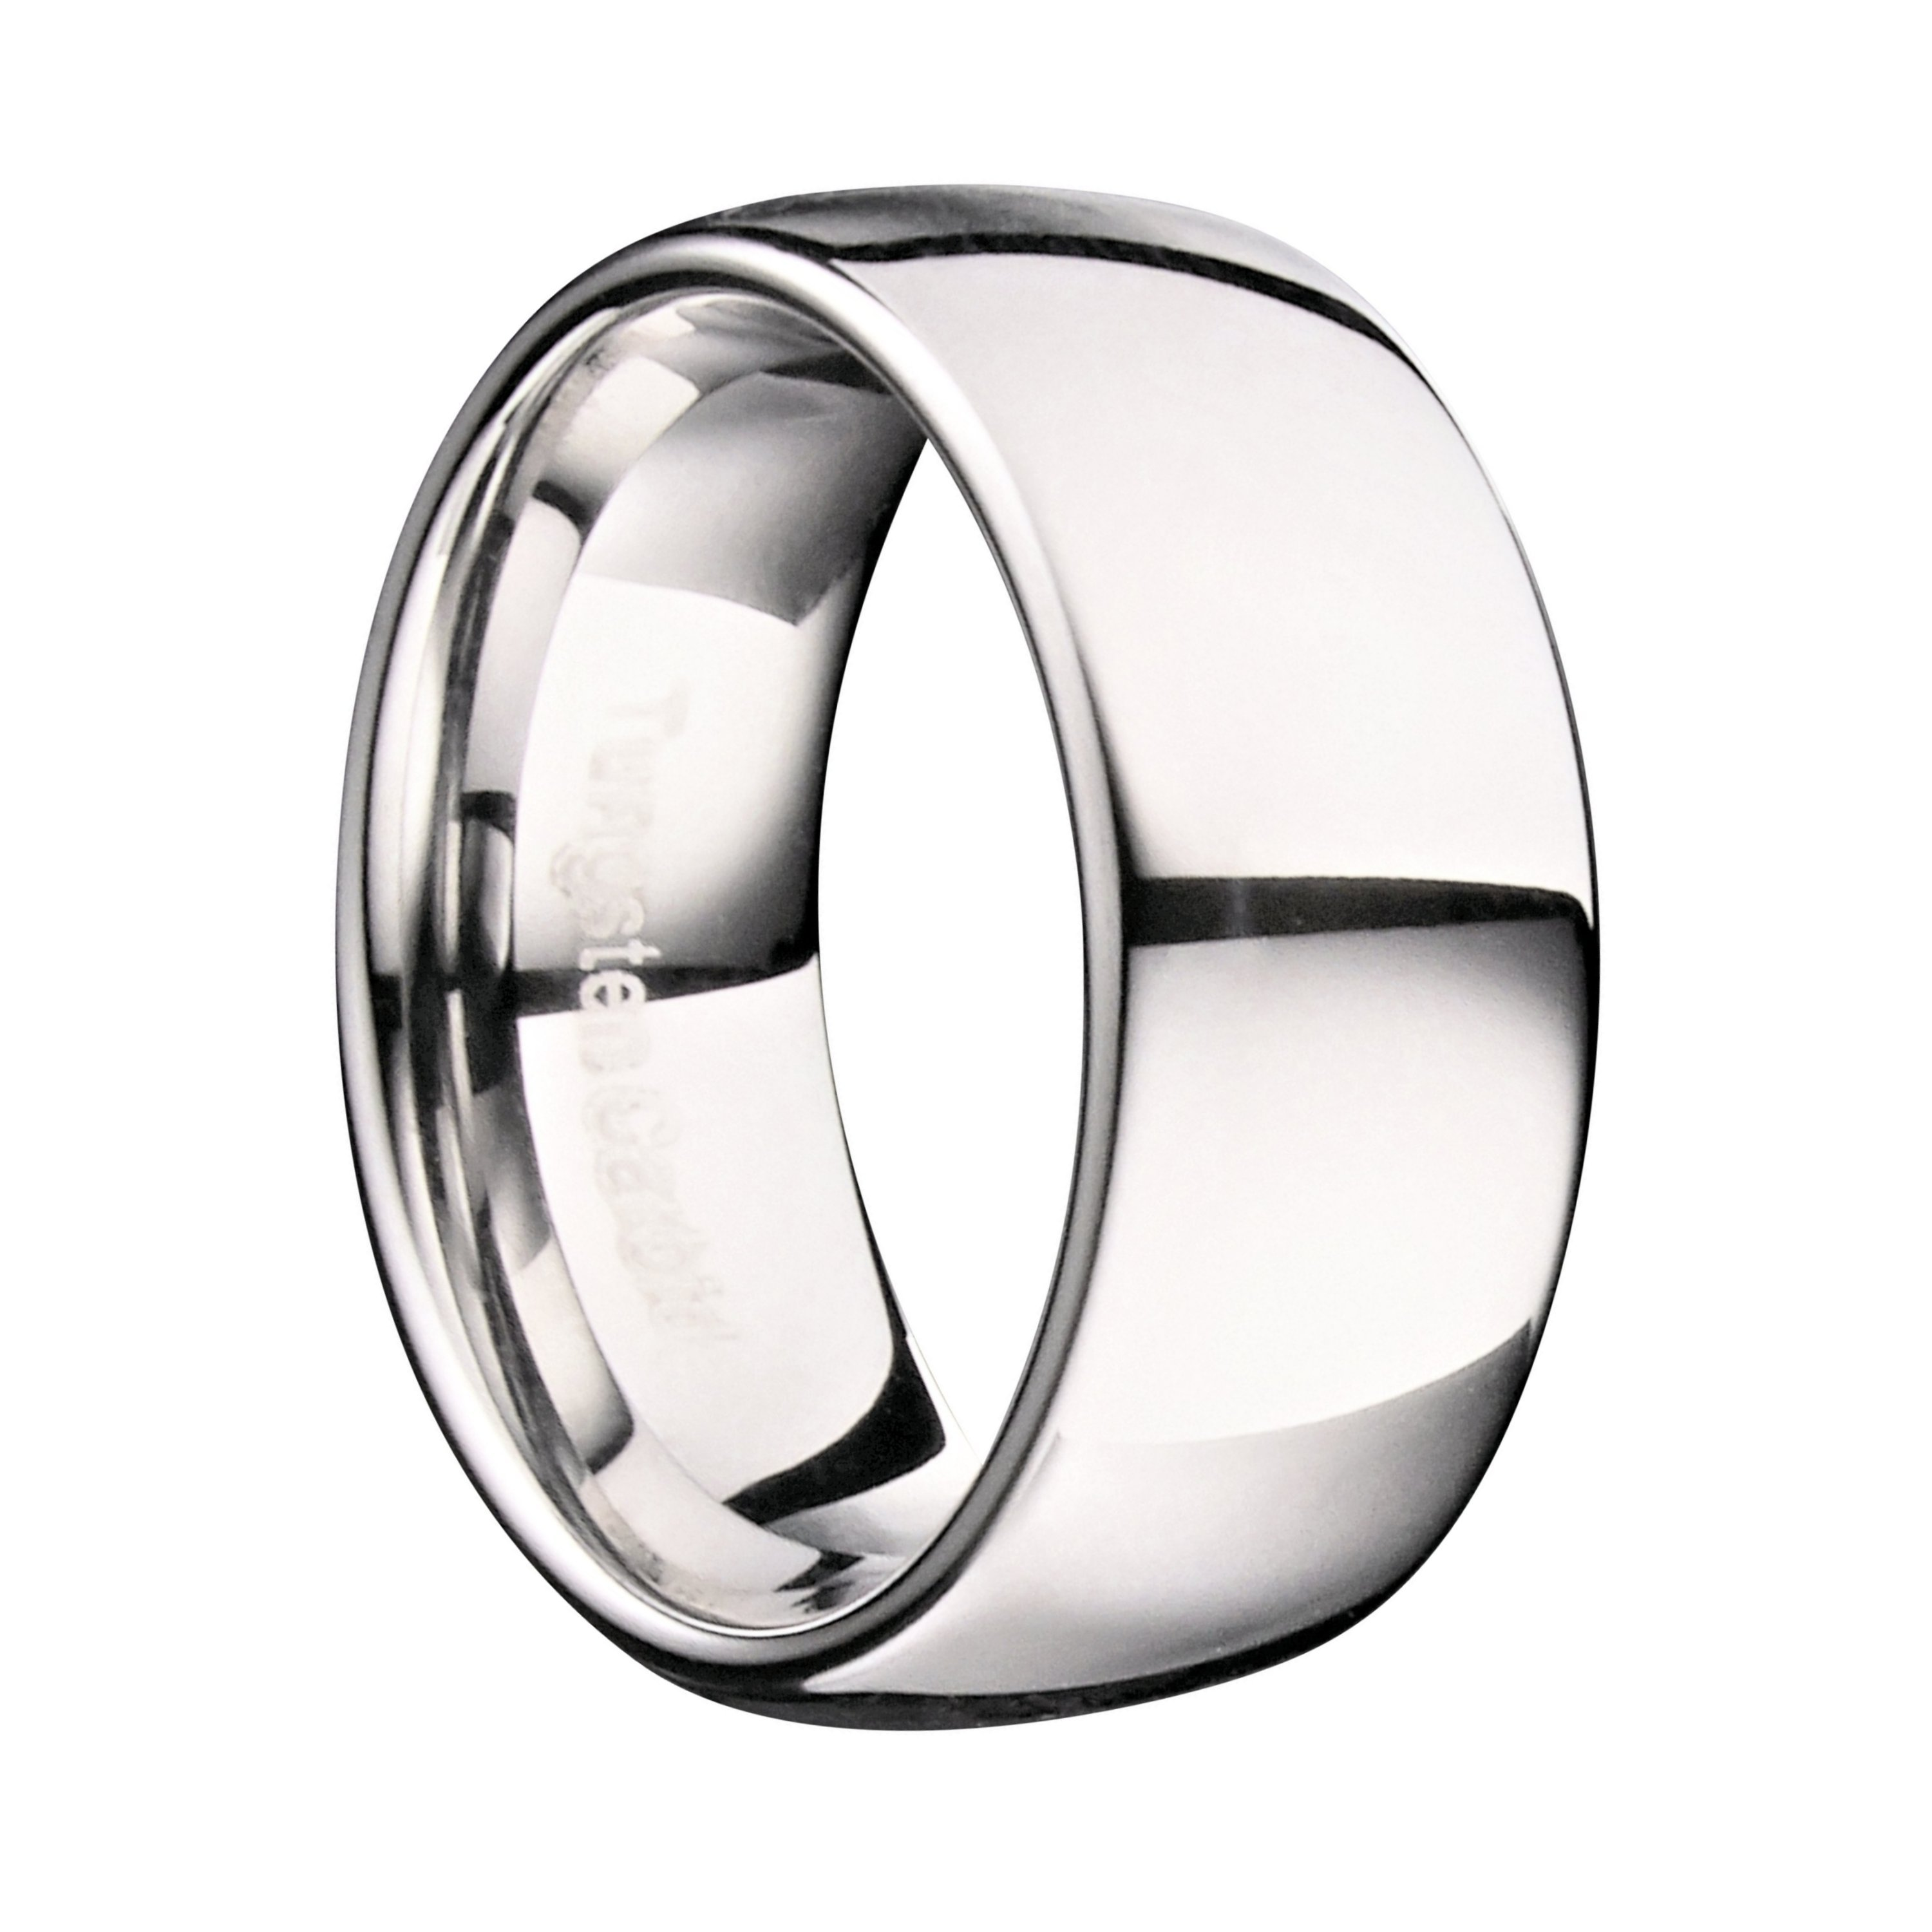 Custom-Engraving-Tungsten-Carbide-Classic-Wedding-Ring-Polished-3mm-to-10mm-Band thumbnail 8